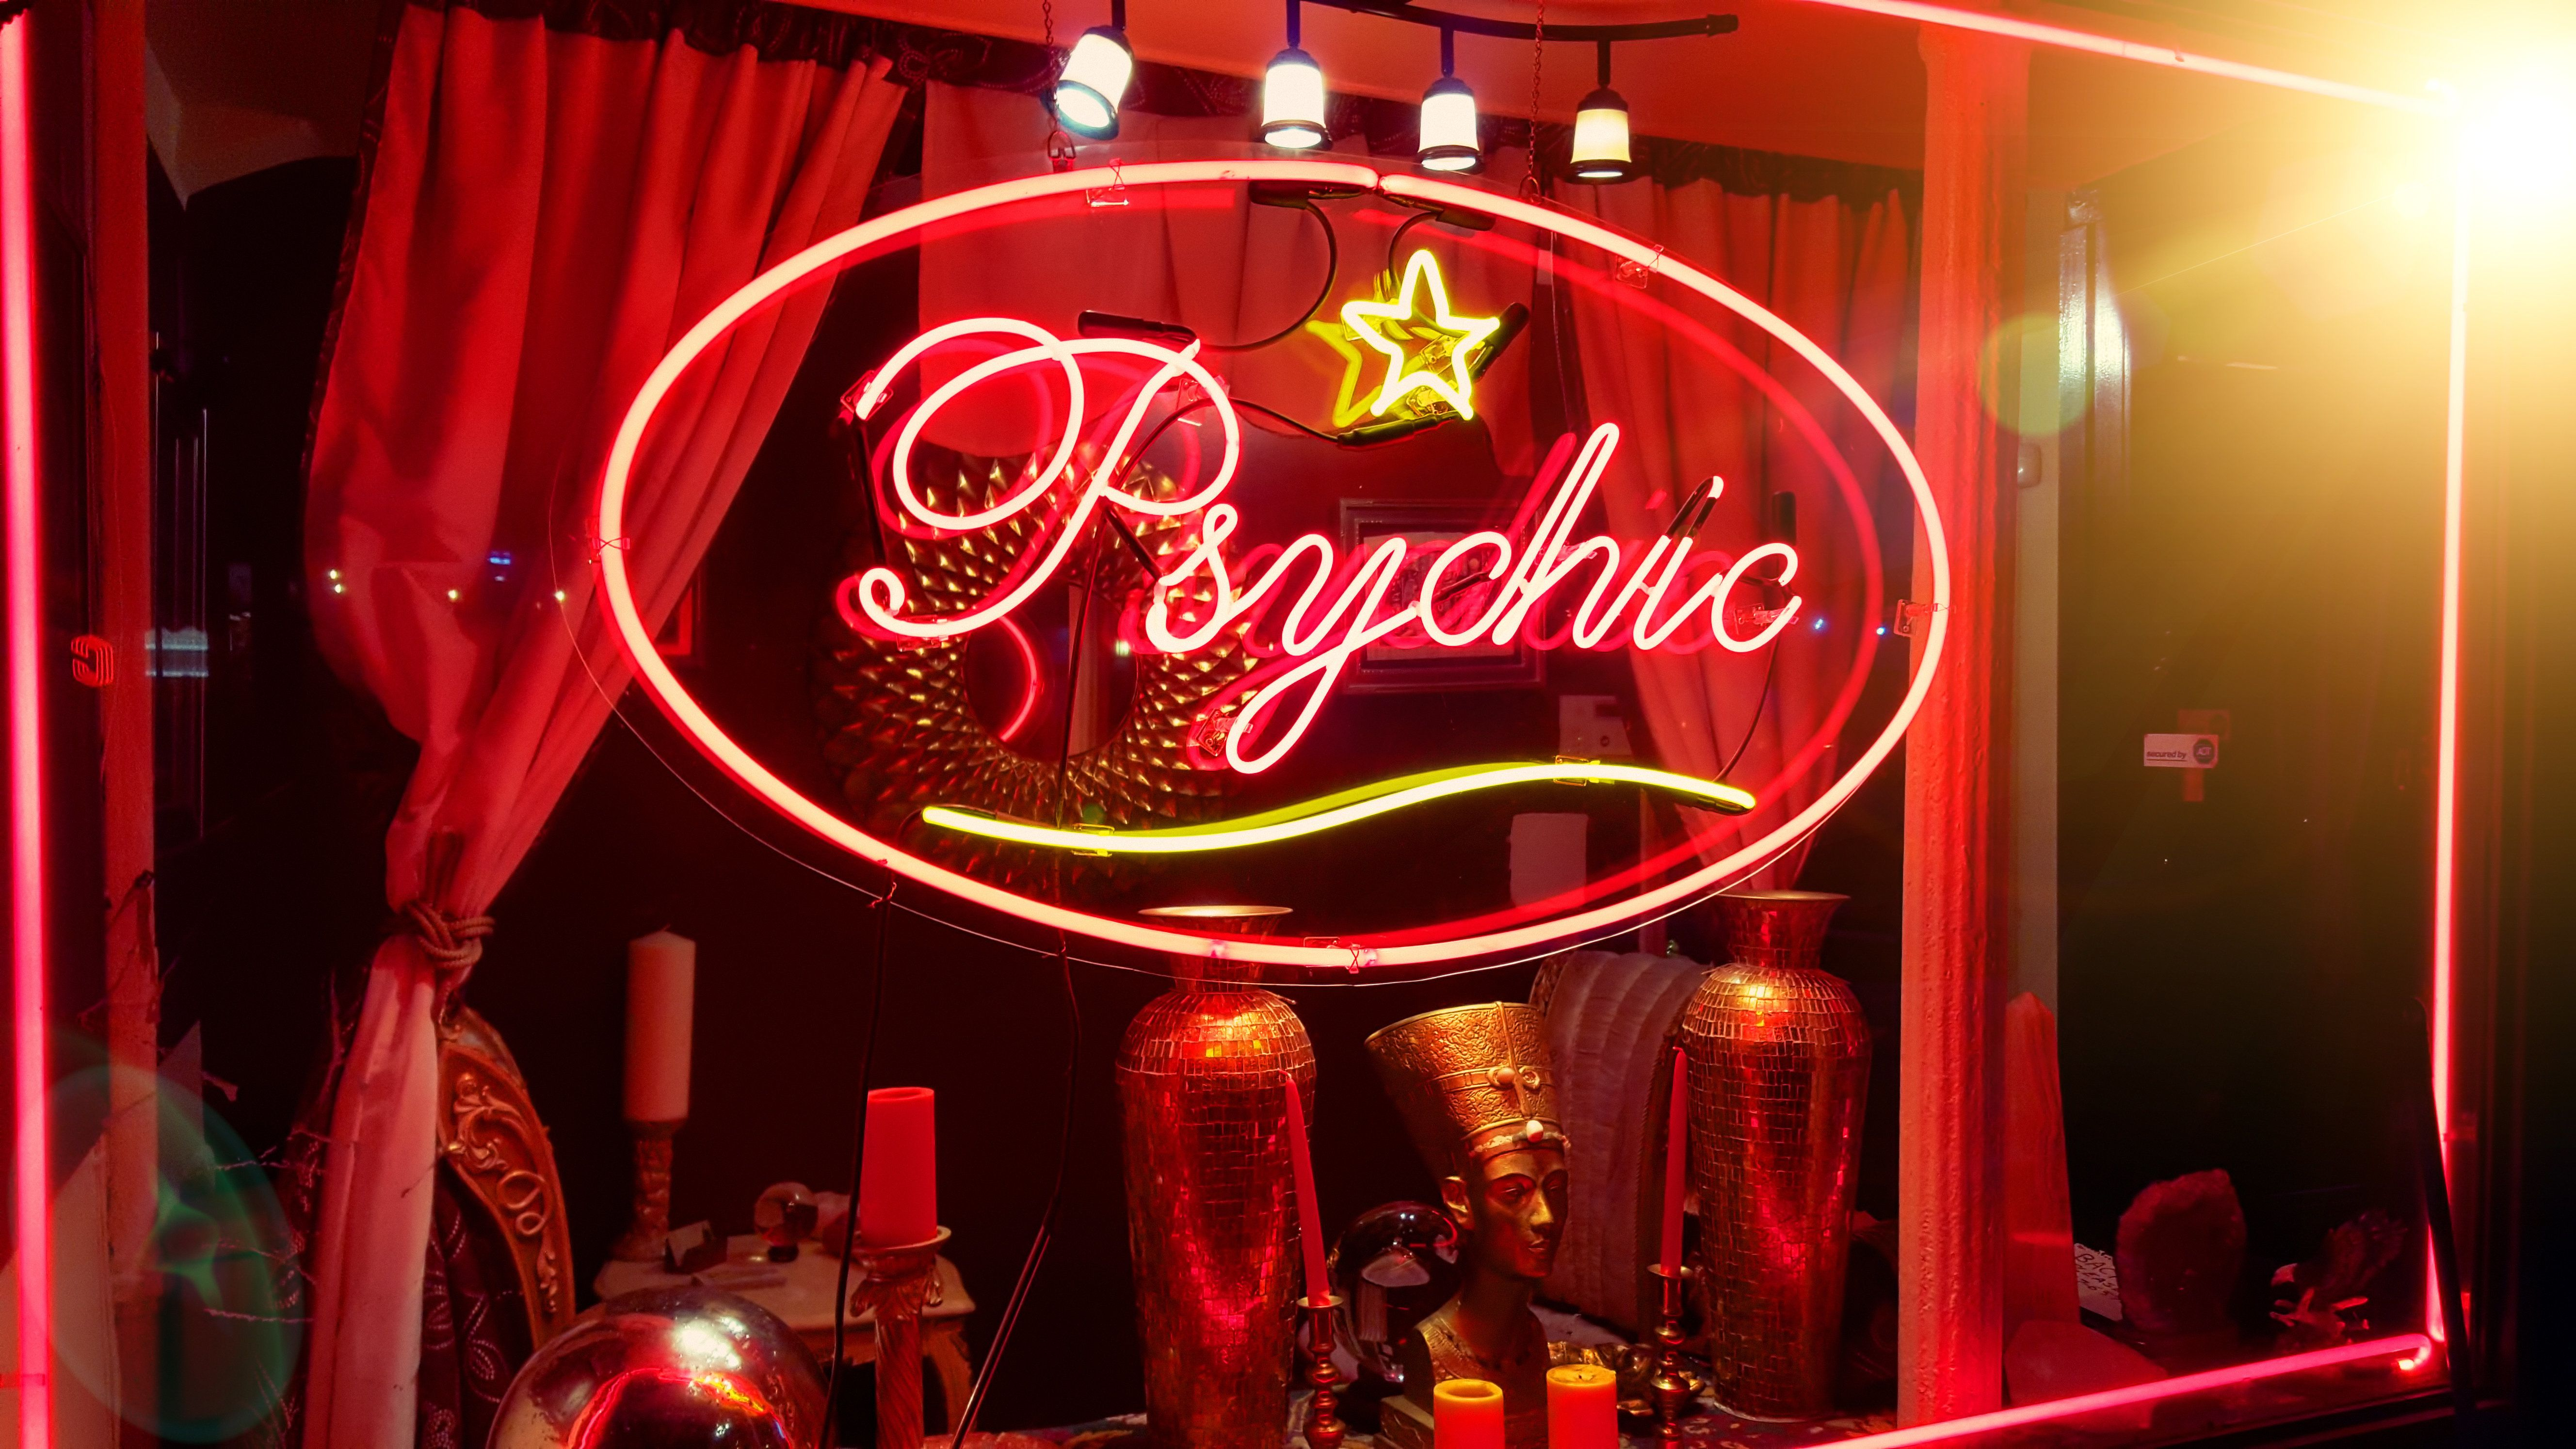 Store window of a psychic parlor in the East Village, Manhattan, New York City